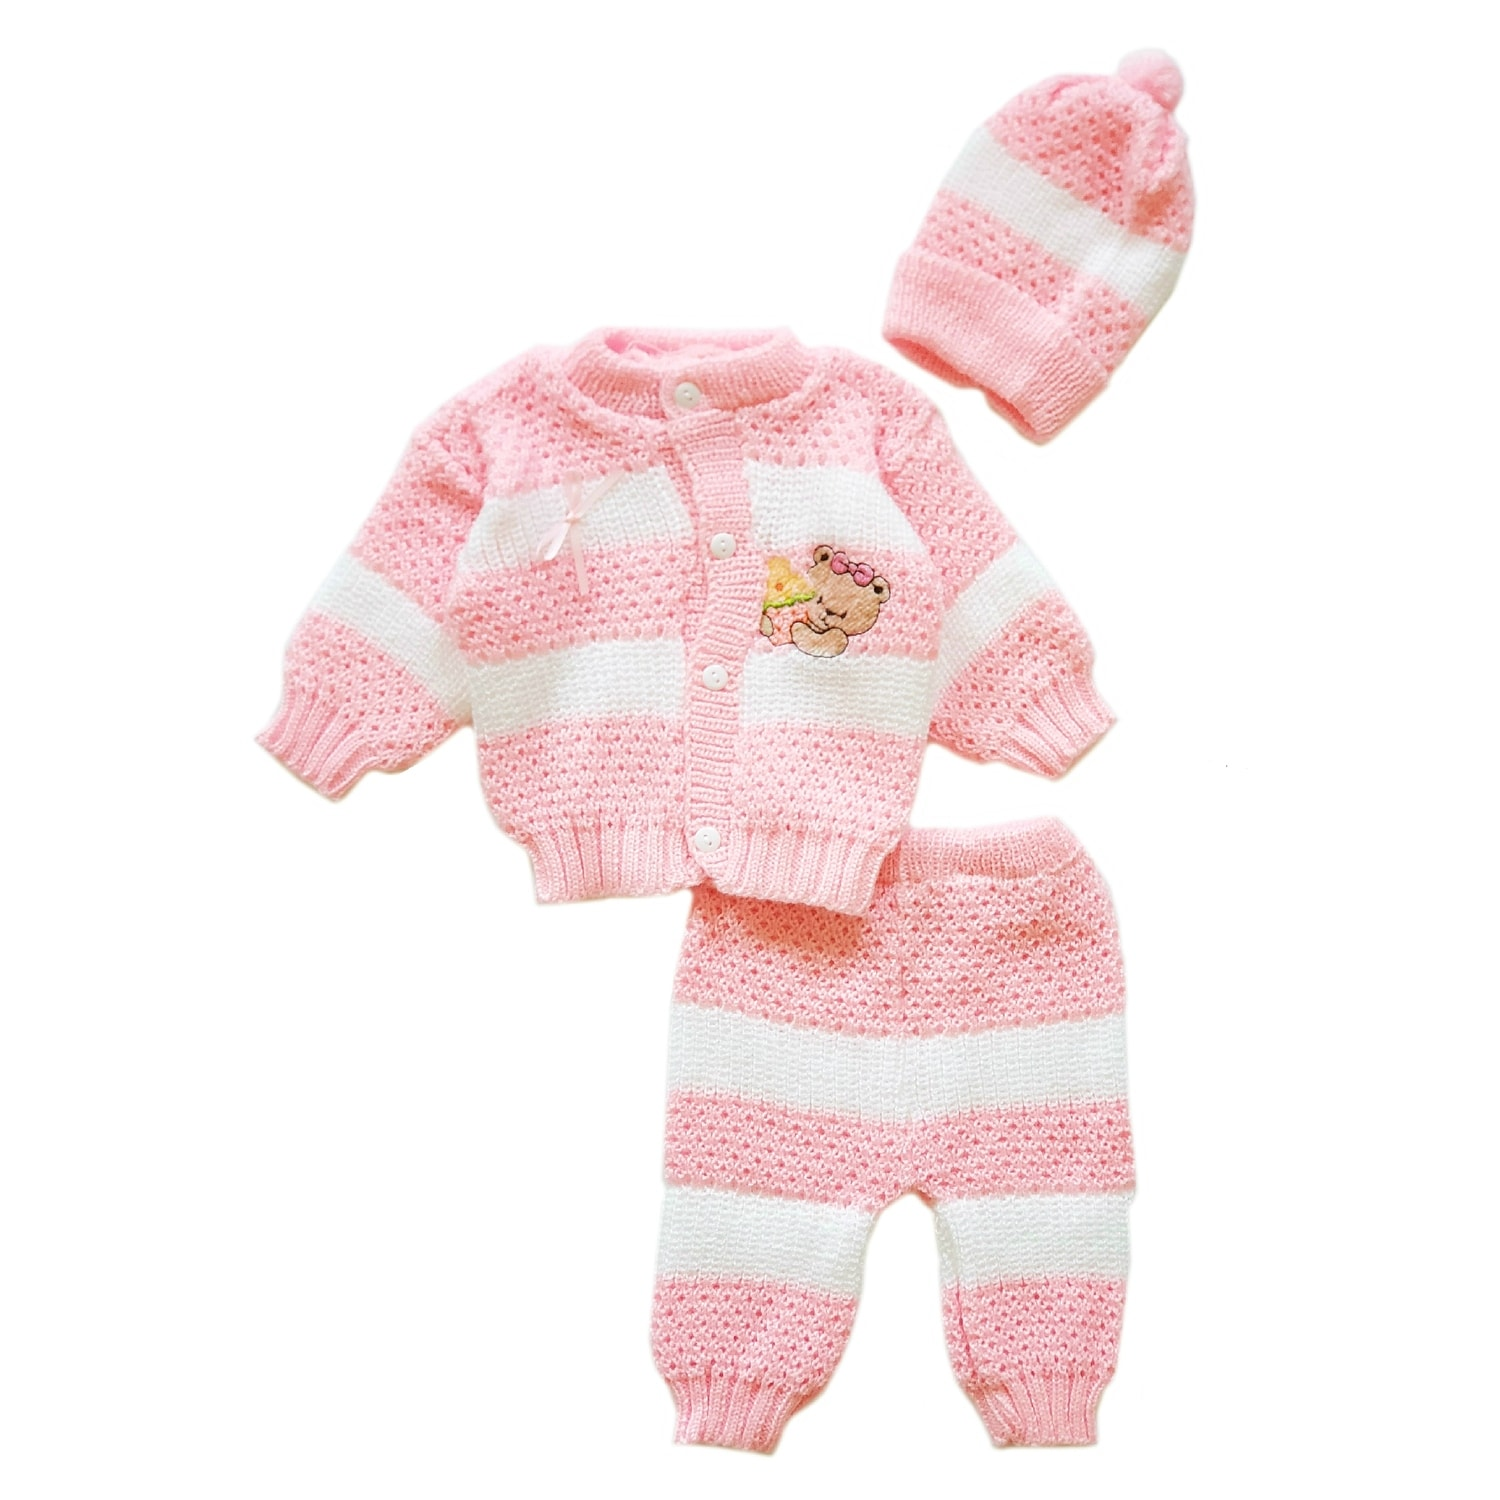 Machine Washable Size Newborn to three months. 3-piece crocheted Baby Pants with Soft Shoes and Beanie